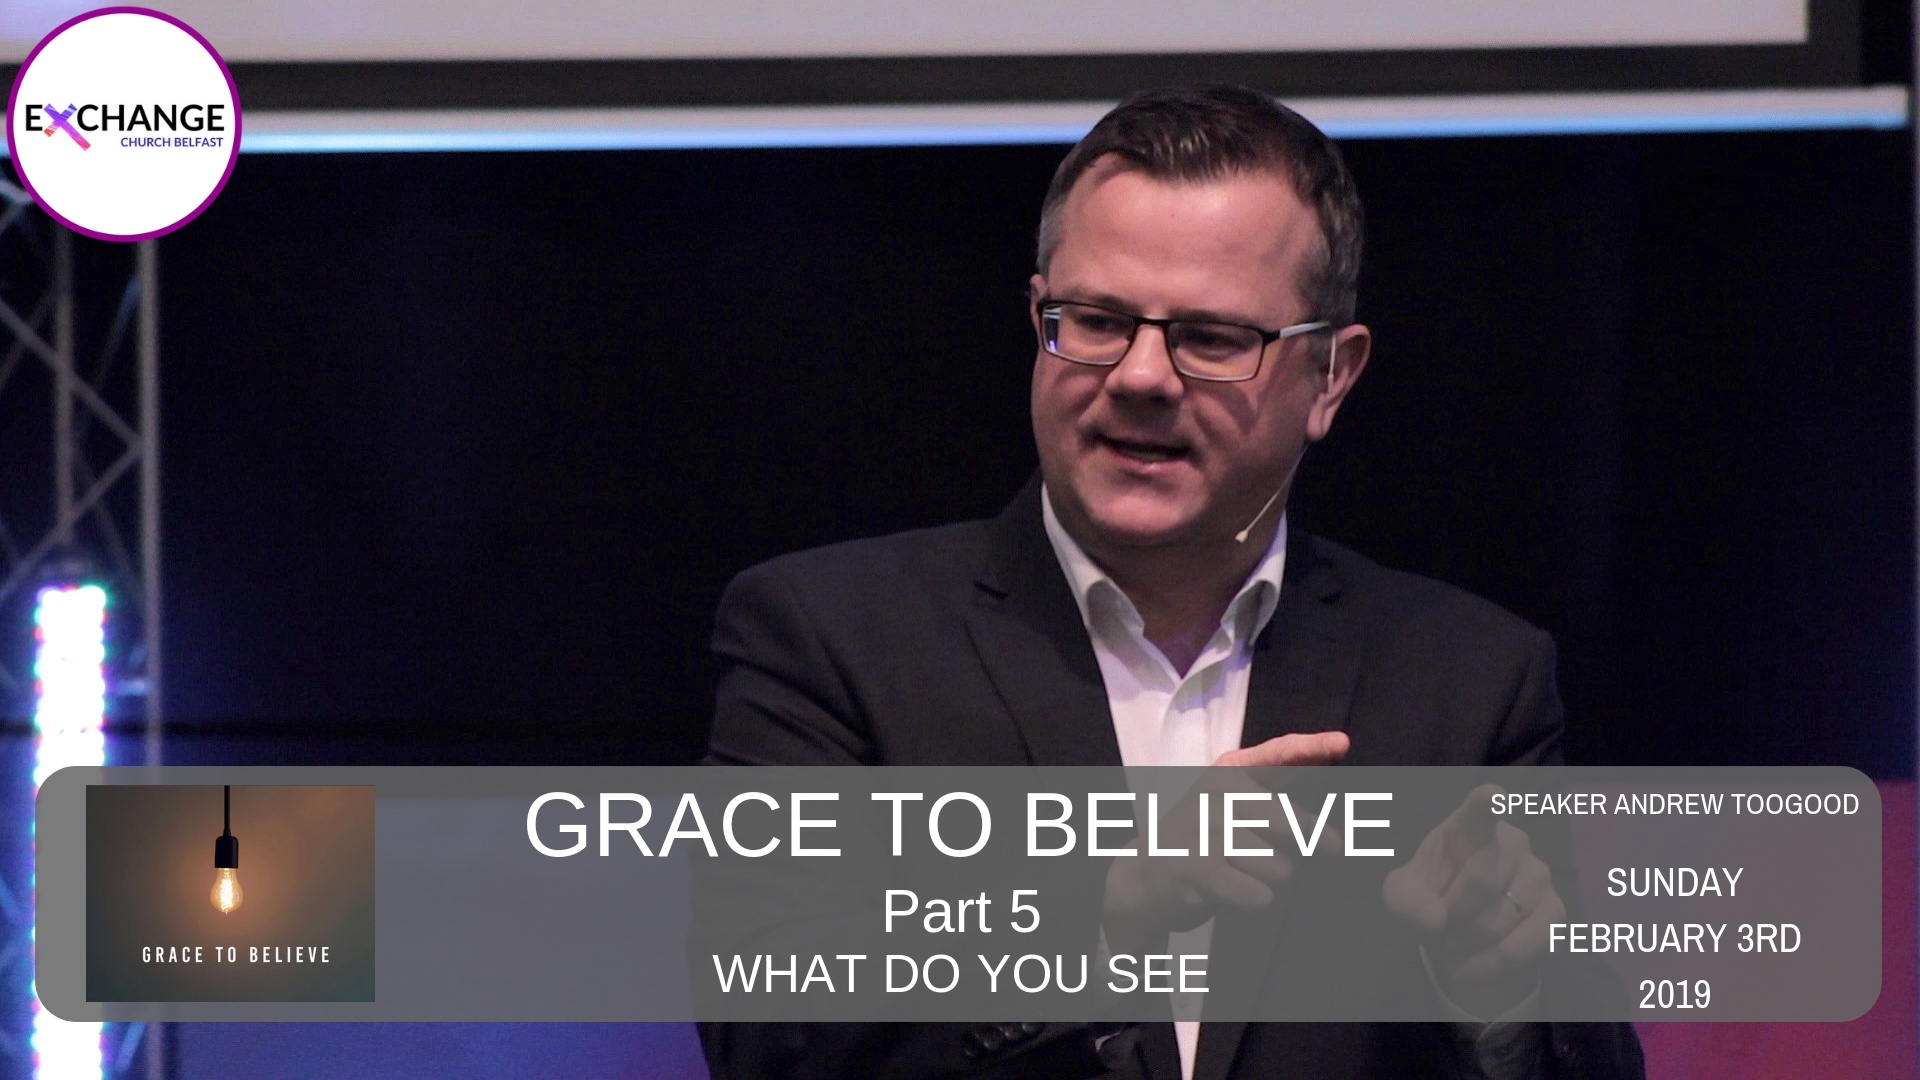 Grace to Believe - Part 5 - What do you see